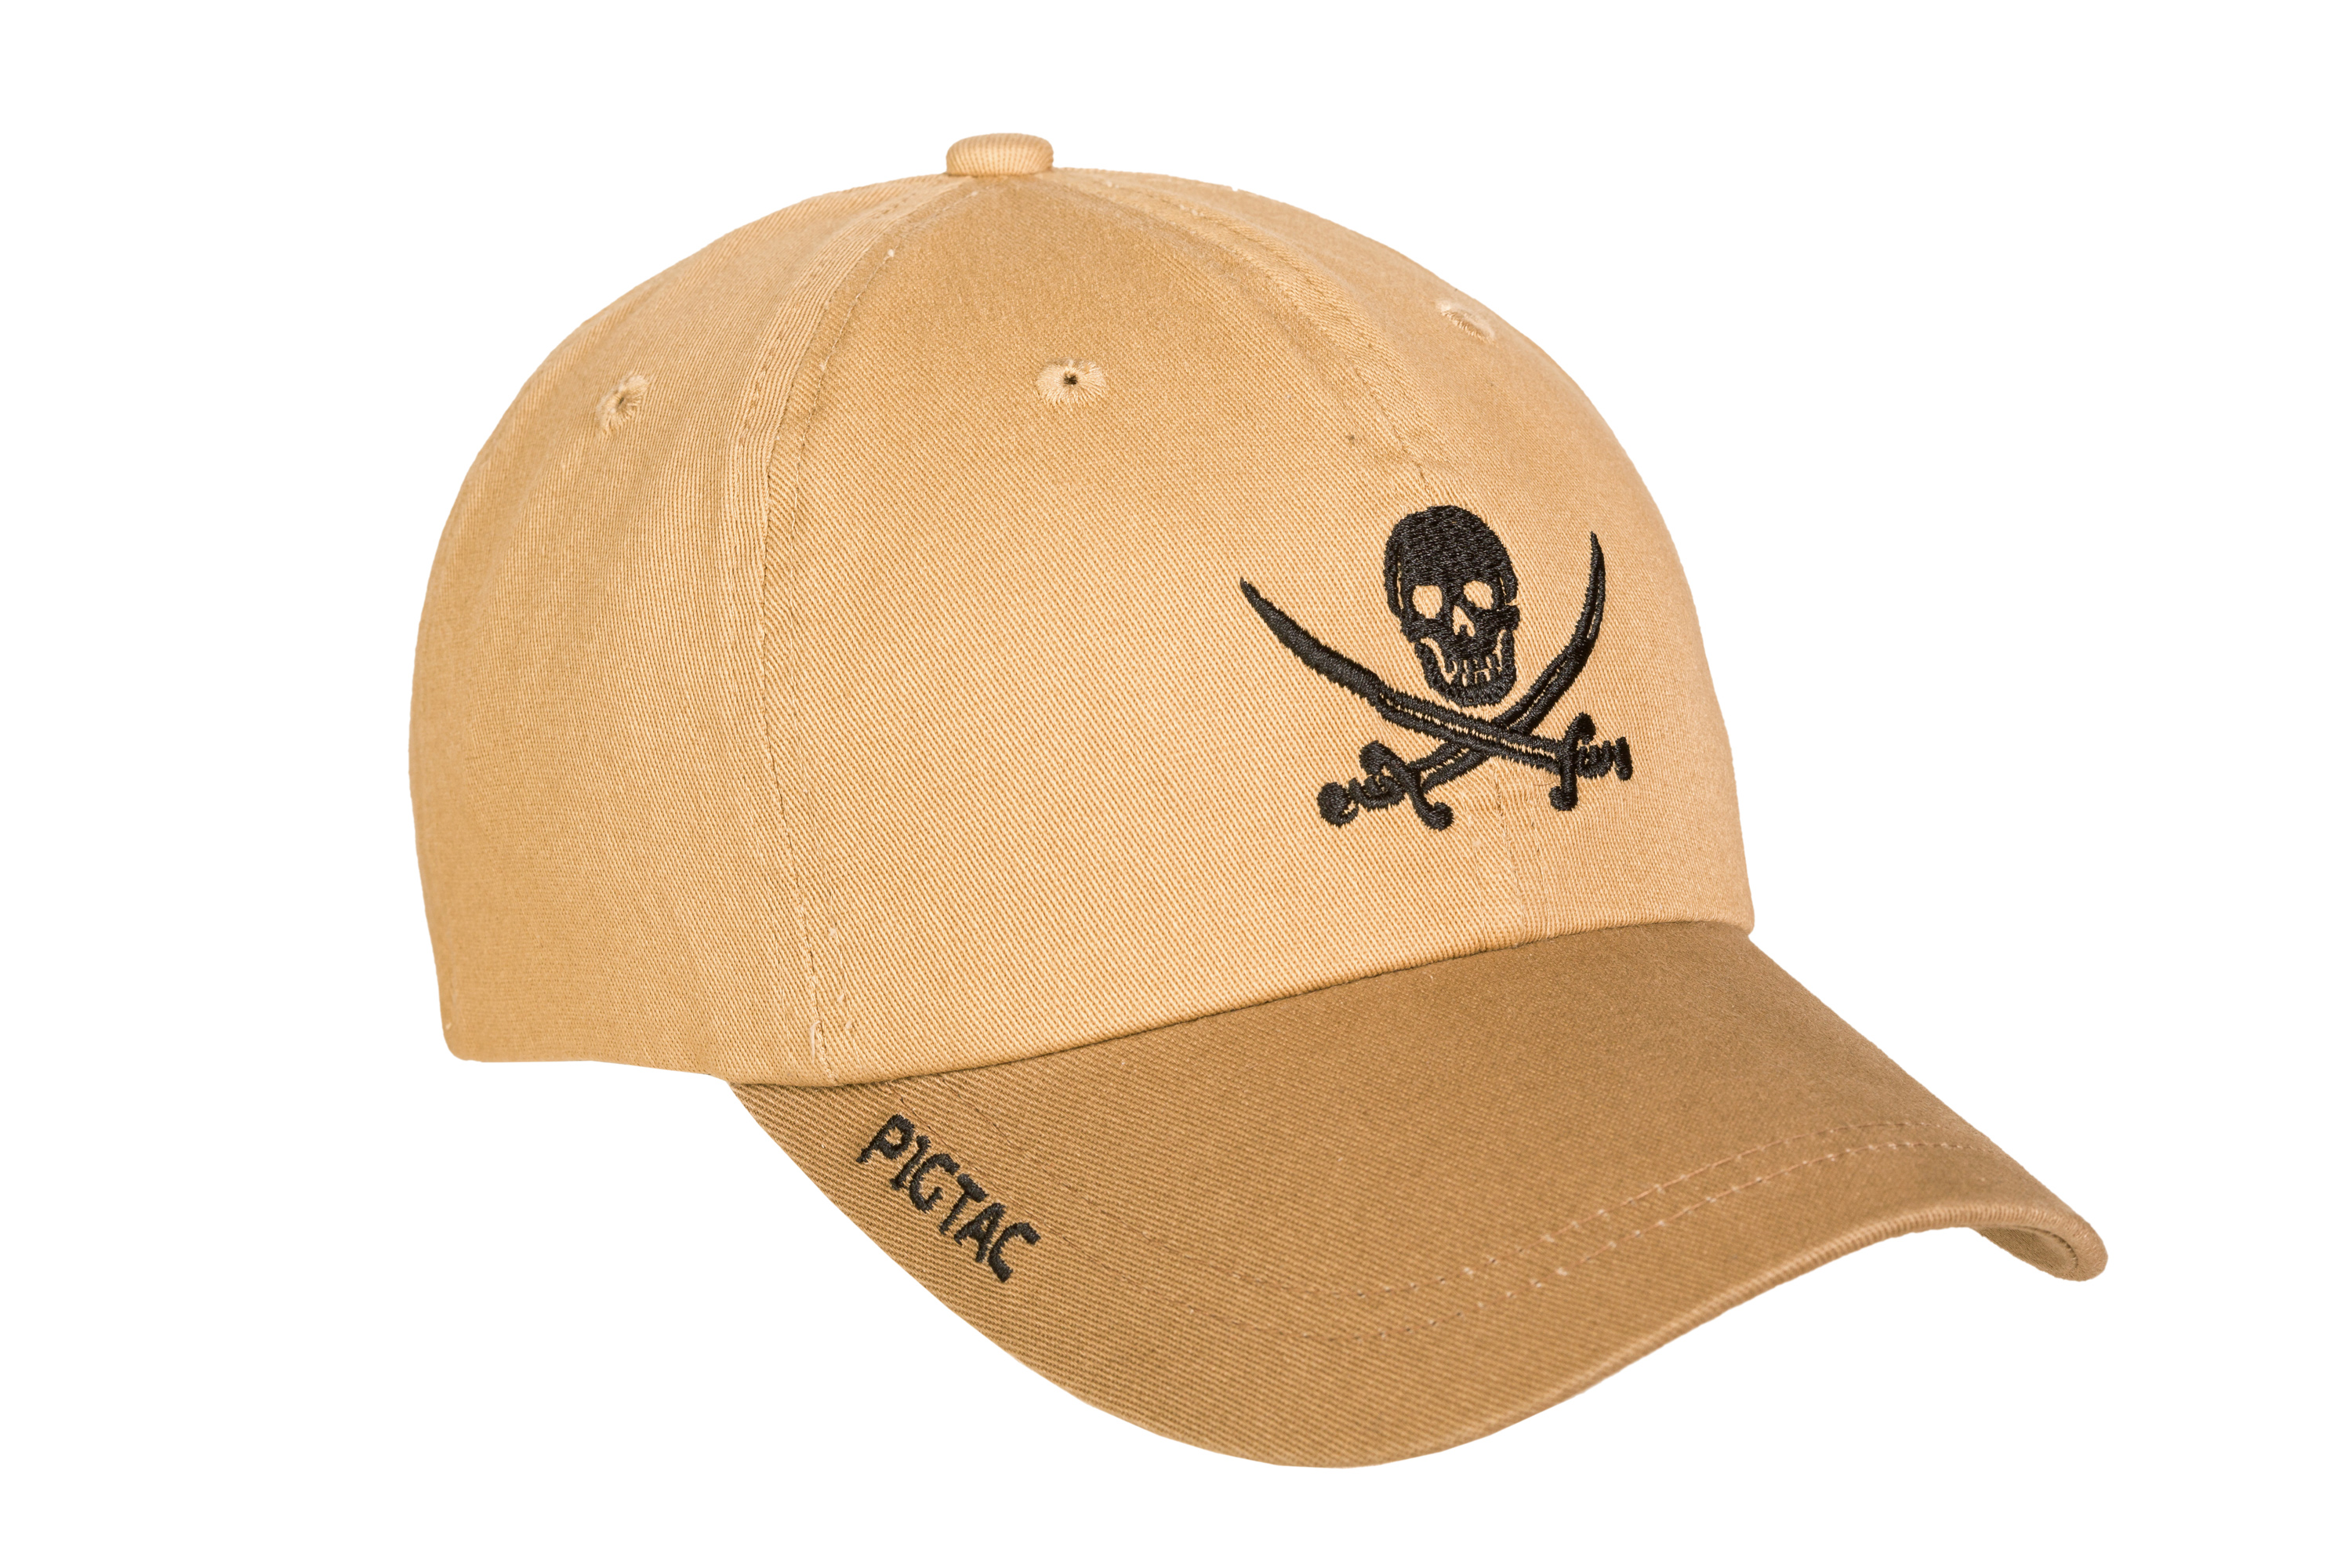 Baseball cap with the logo of